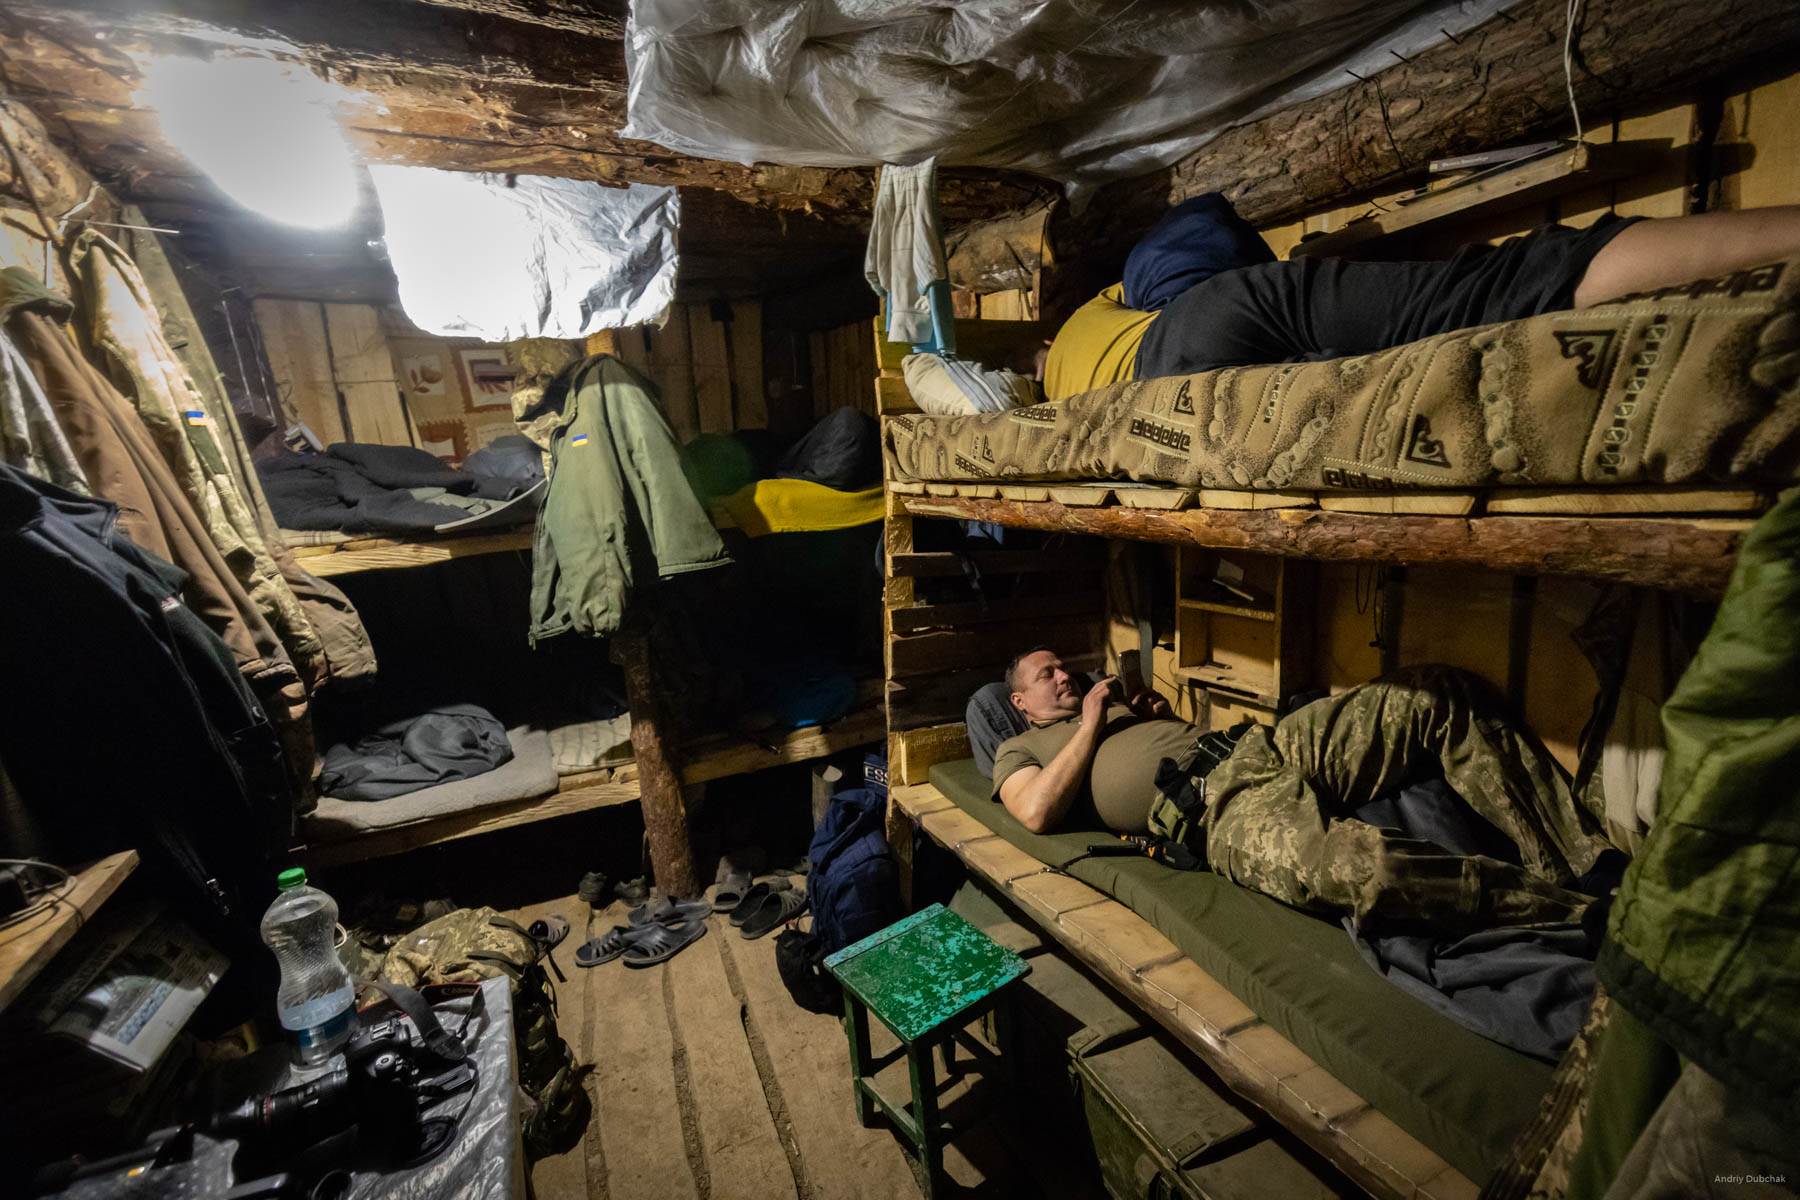 """After a four-hour watch, we return to a """"sleeping dugout"""" that contains 10 beds. The warriors rest here between duty calls. Standard dugout accommodates from 6 to 10 fighters. There are, of course, smaller. According to the rules, there are two entrance/exits. It happens that a dugout has several rooms(It depends on how big a hole was dug and how much construction materials were available). We even saw «shelters-gyms. »   District of Popasnoy, December 2017"""